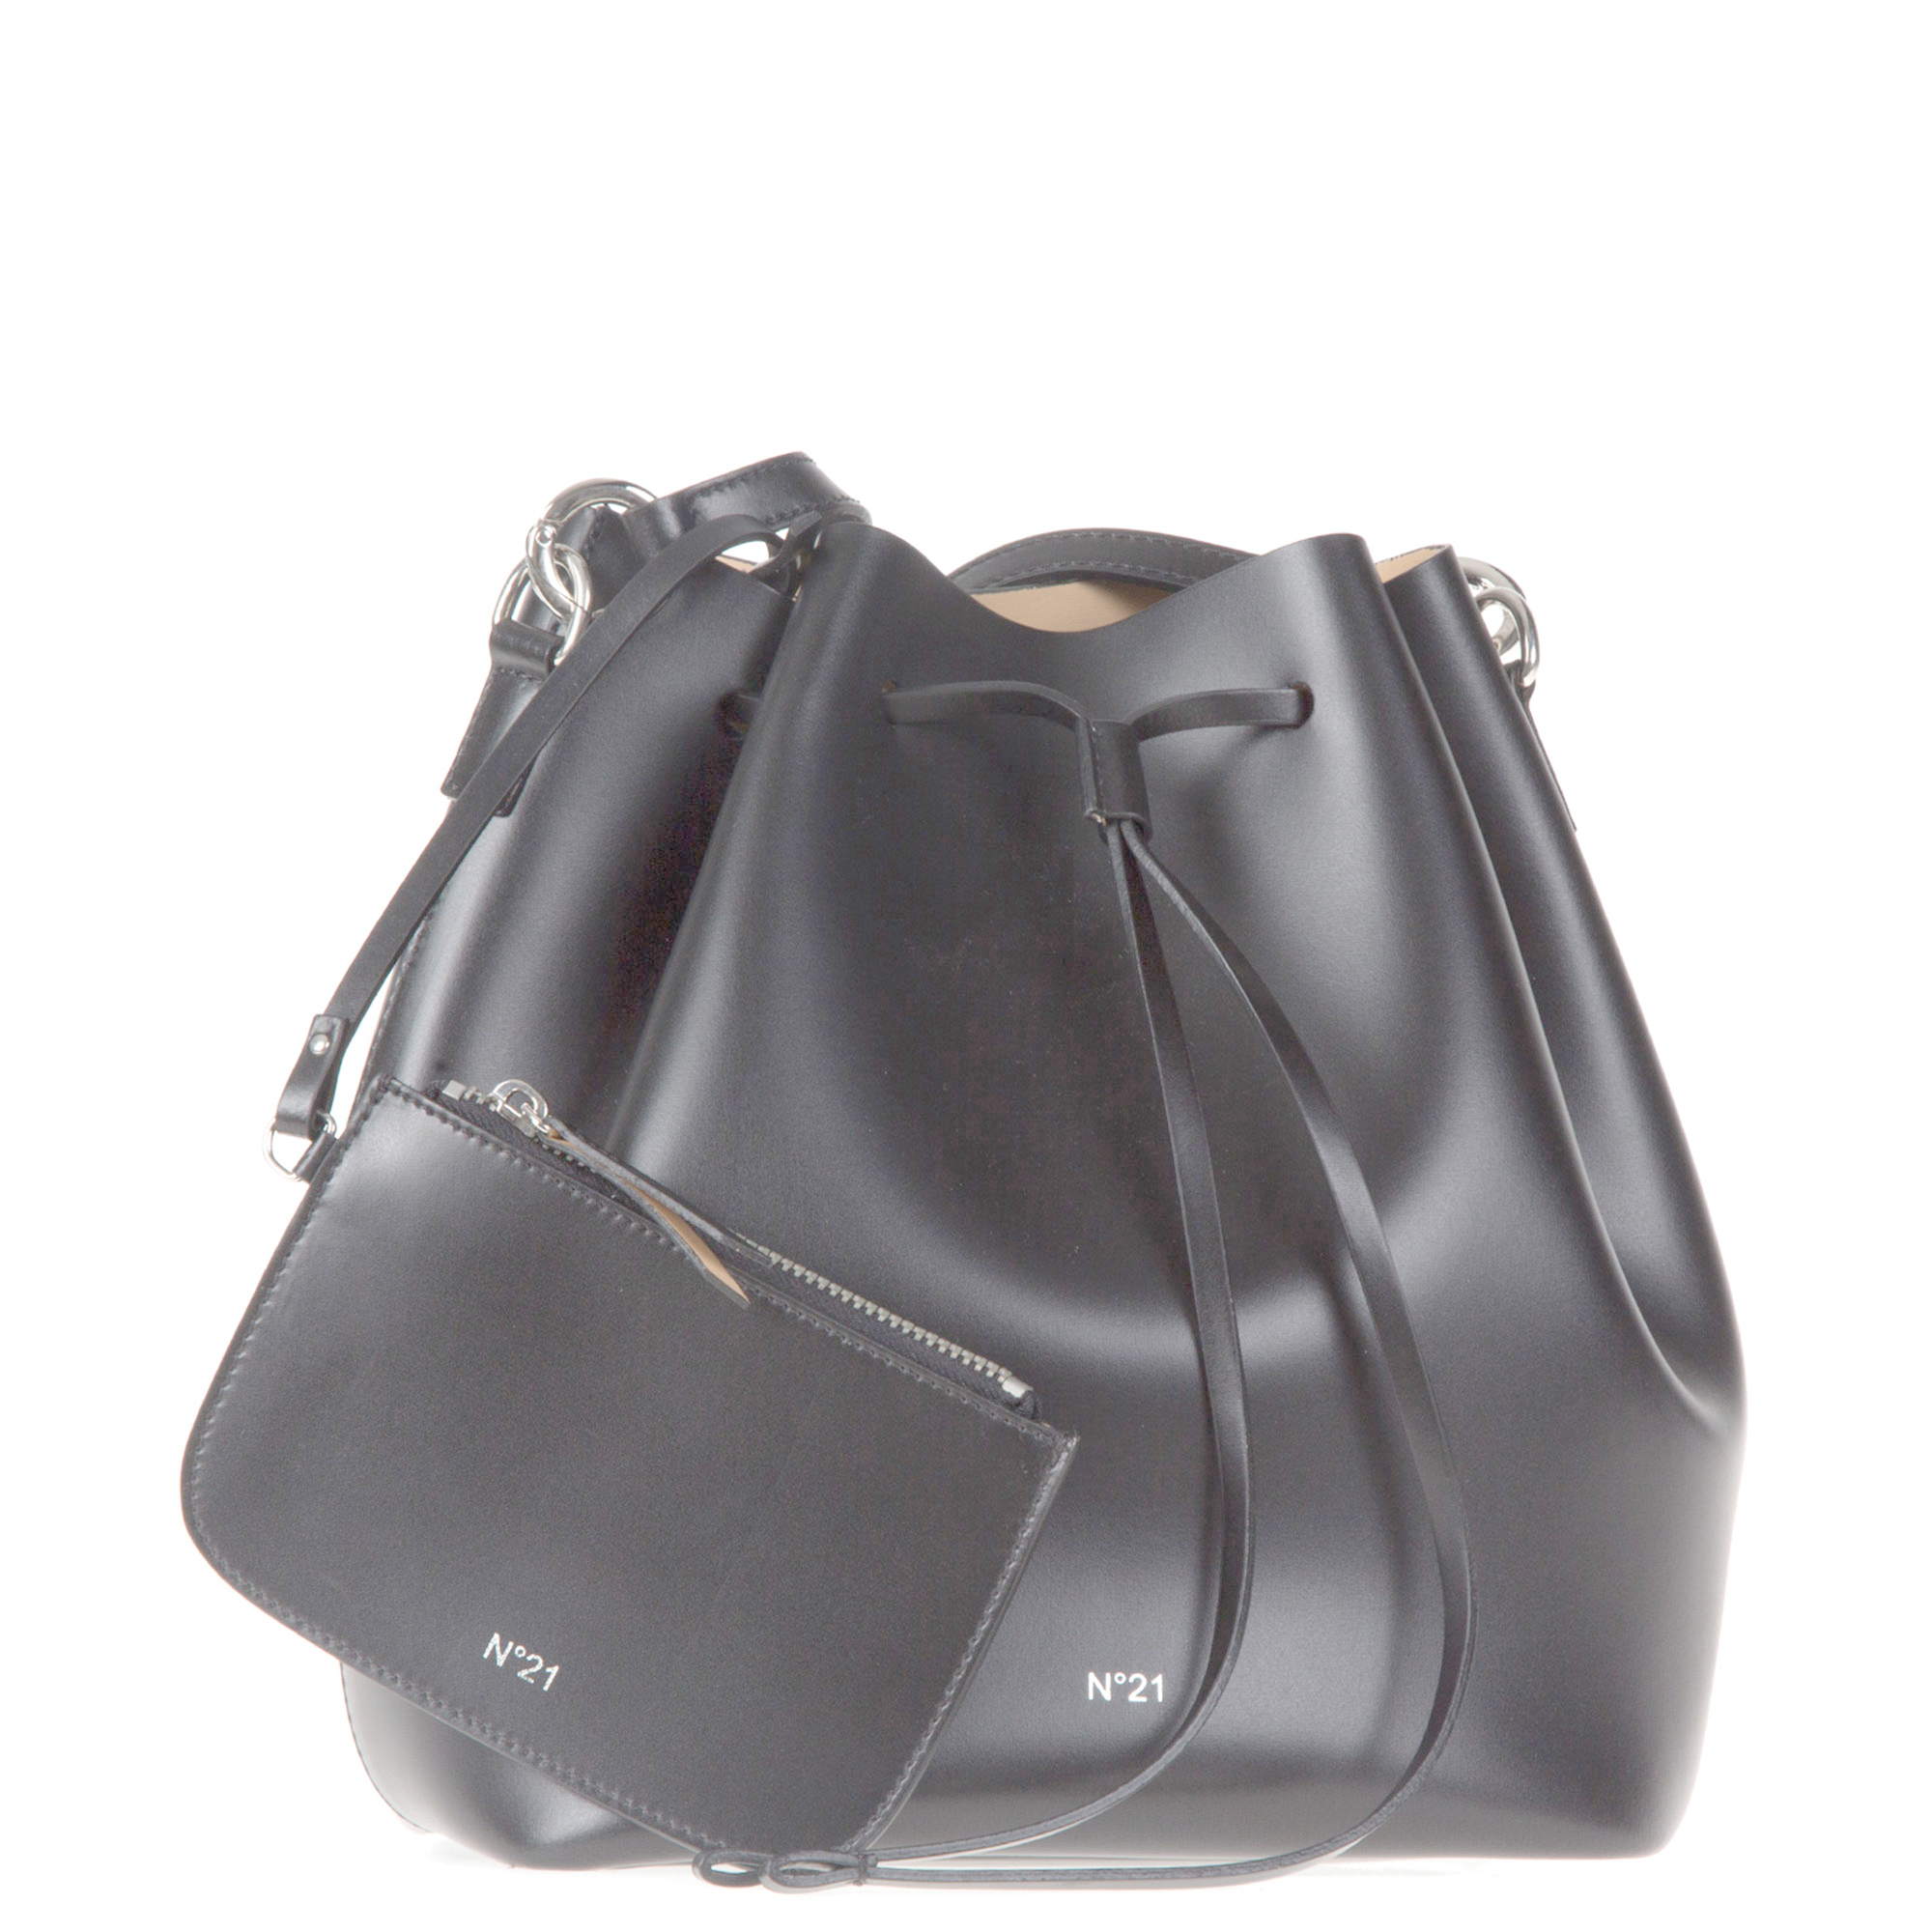 Lyst - N°21 Bucket Bag in Black 65def6a8330e4